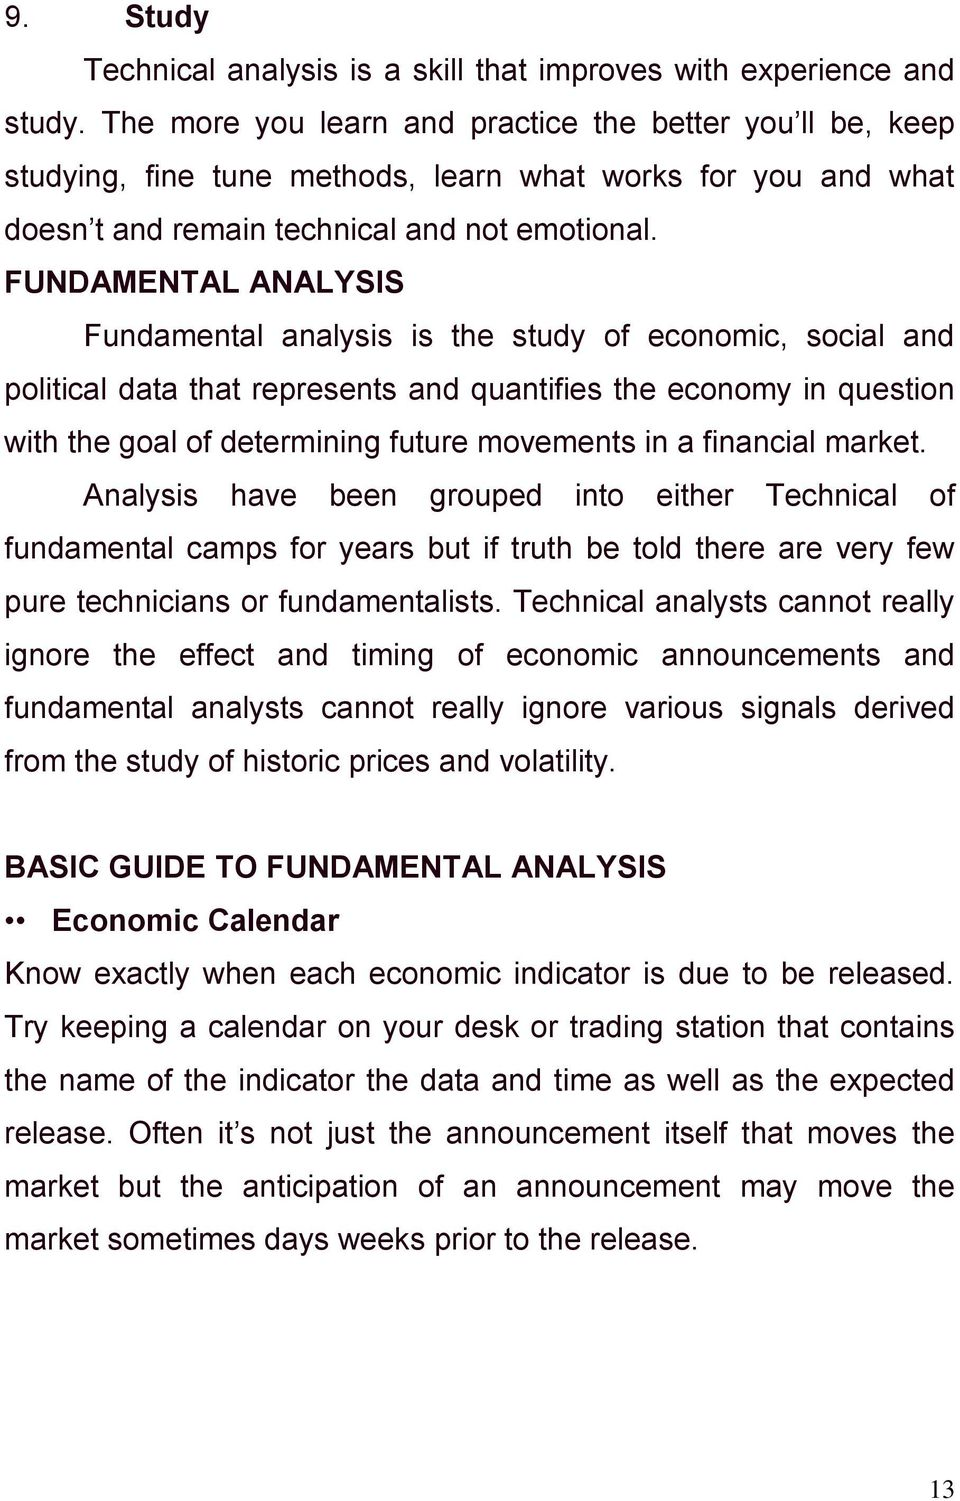 FUNDAMENTAL ANALYSIS Fundamental analysis is the study of economic, social and political data that represents and quantifies the economy in question with the goal of determining future movements in a